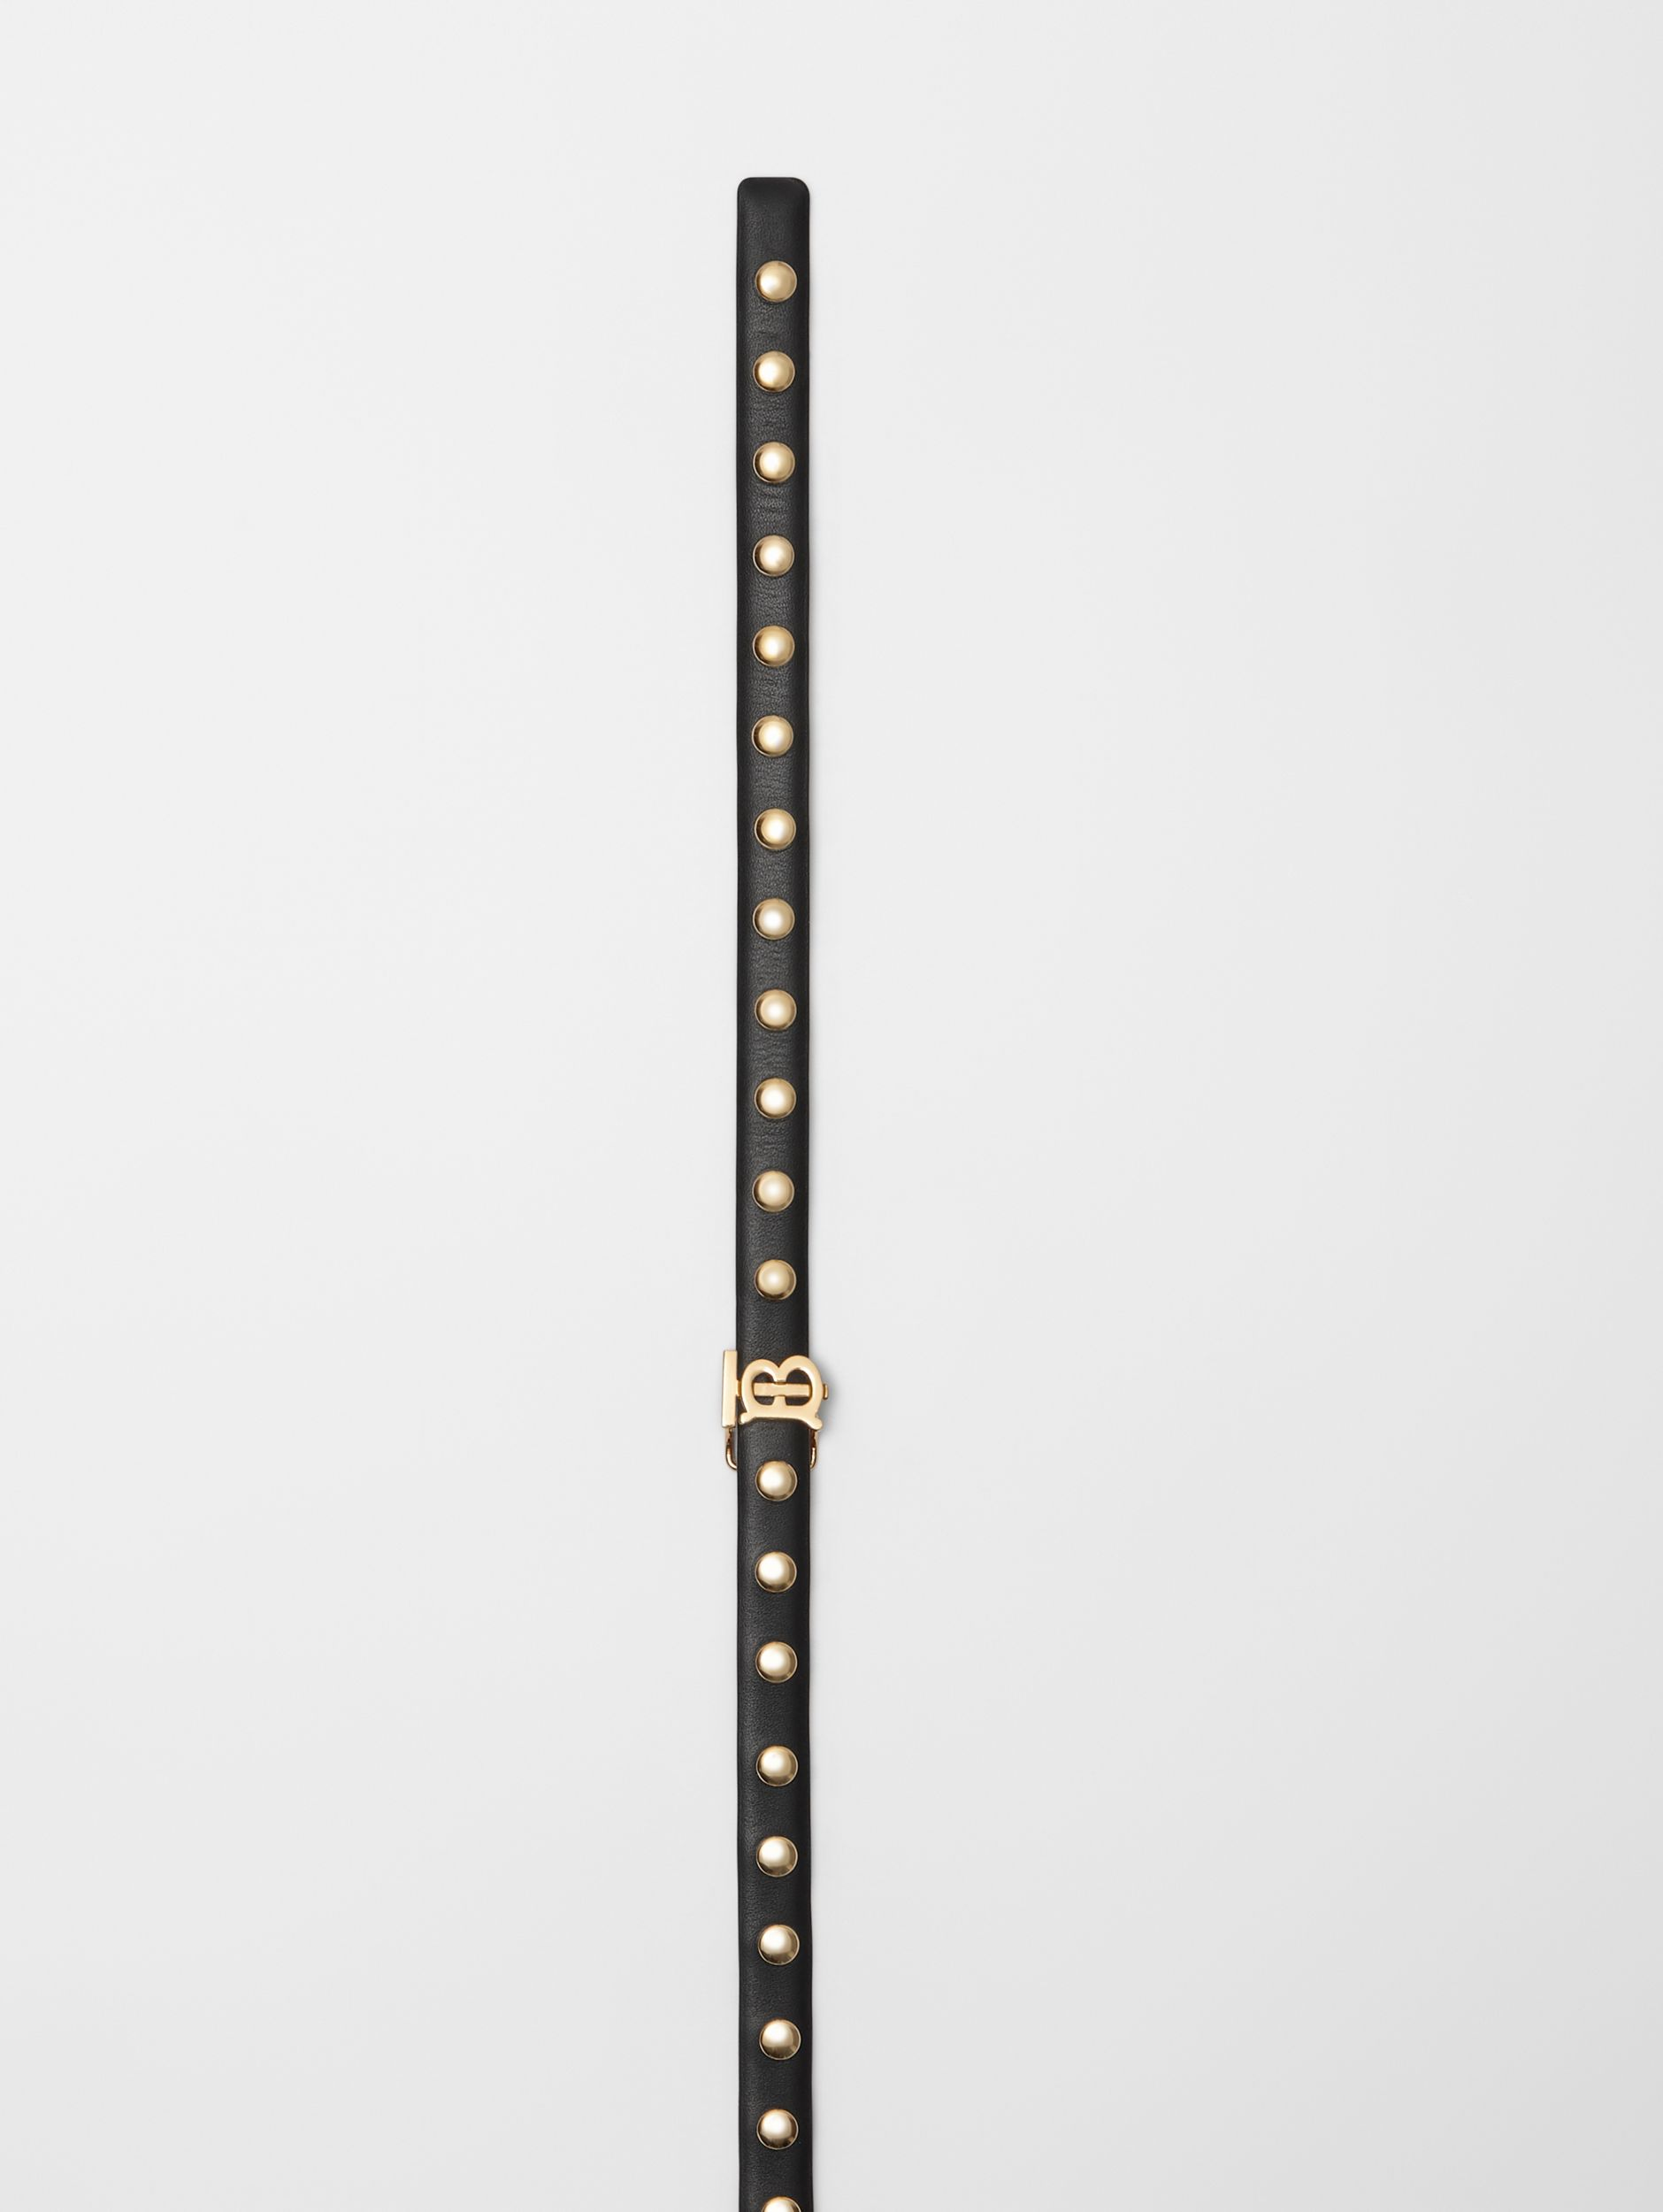 Monogram Motif Studded Leather Belt in Black/light Gold - Women | Burberry - 2